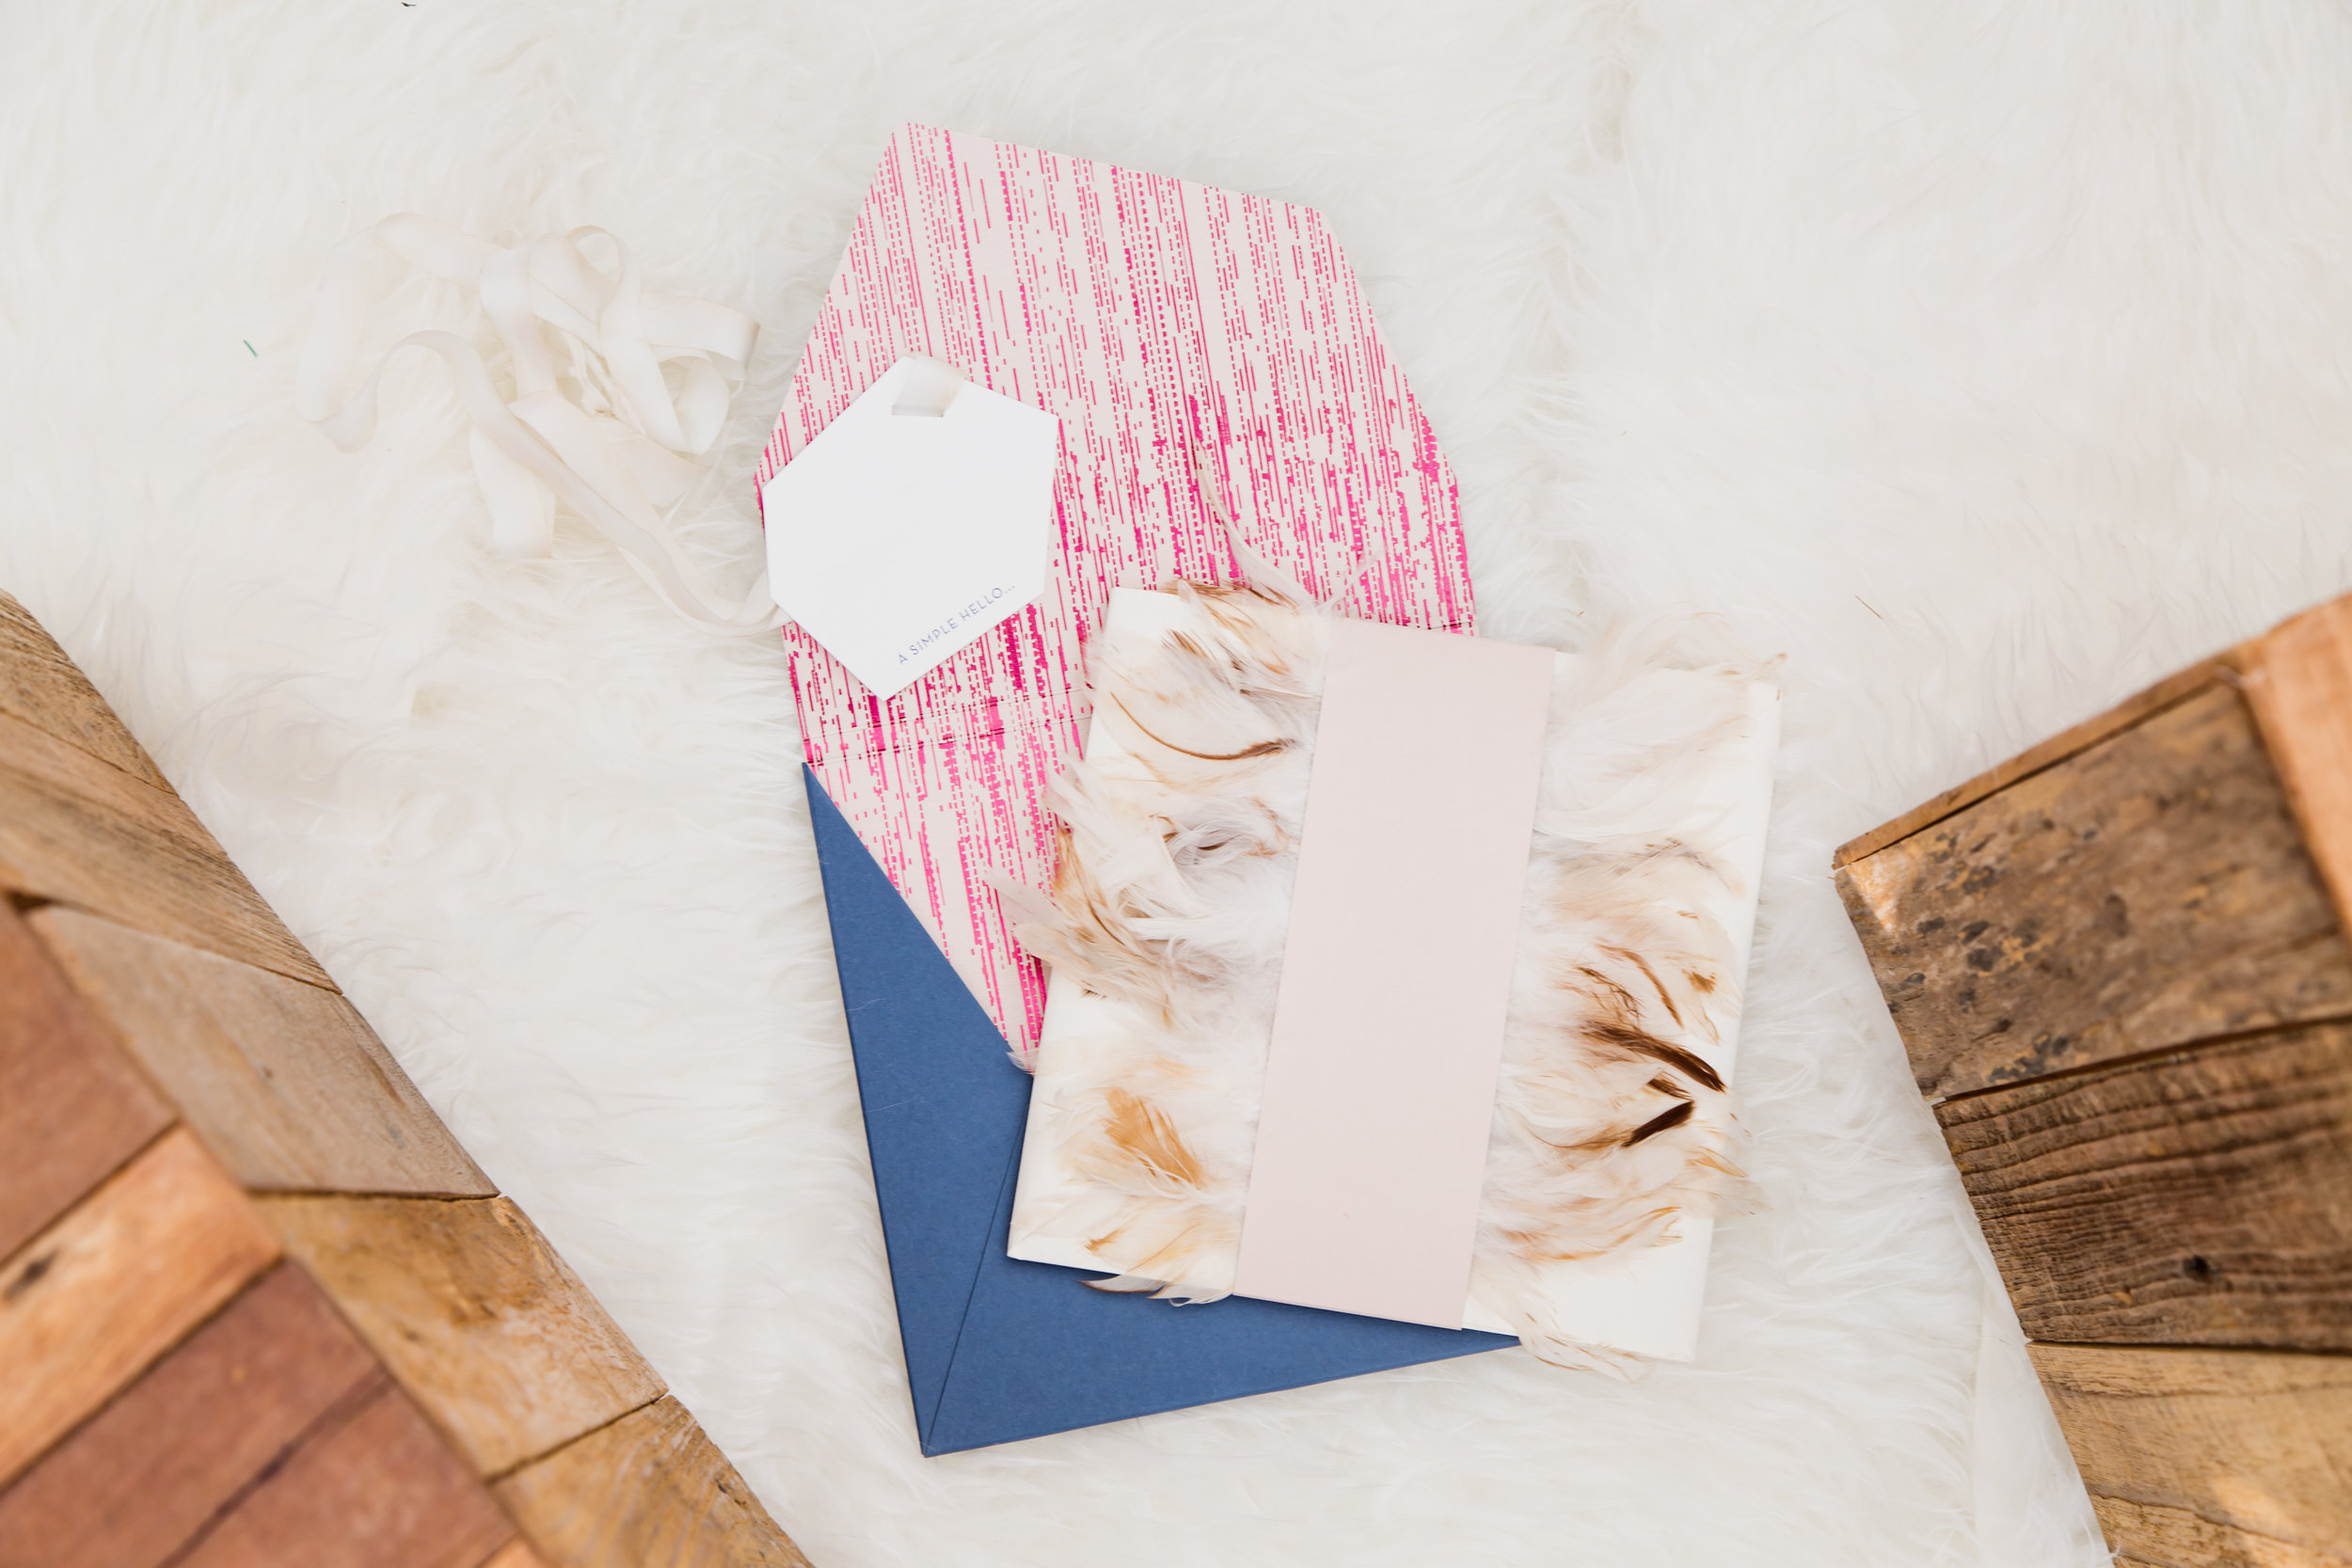 Luxury invitations with feathers.Destination Wedding Planner  Andrea Eppolito ·Photos by  Adam Frazier Photography ·Floral and Decor by  Destinations by Design · Lighting by  LED Unplugged ·Venue · Invitations  Ceci New York  · Menus by  Alligator Soup